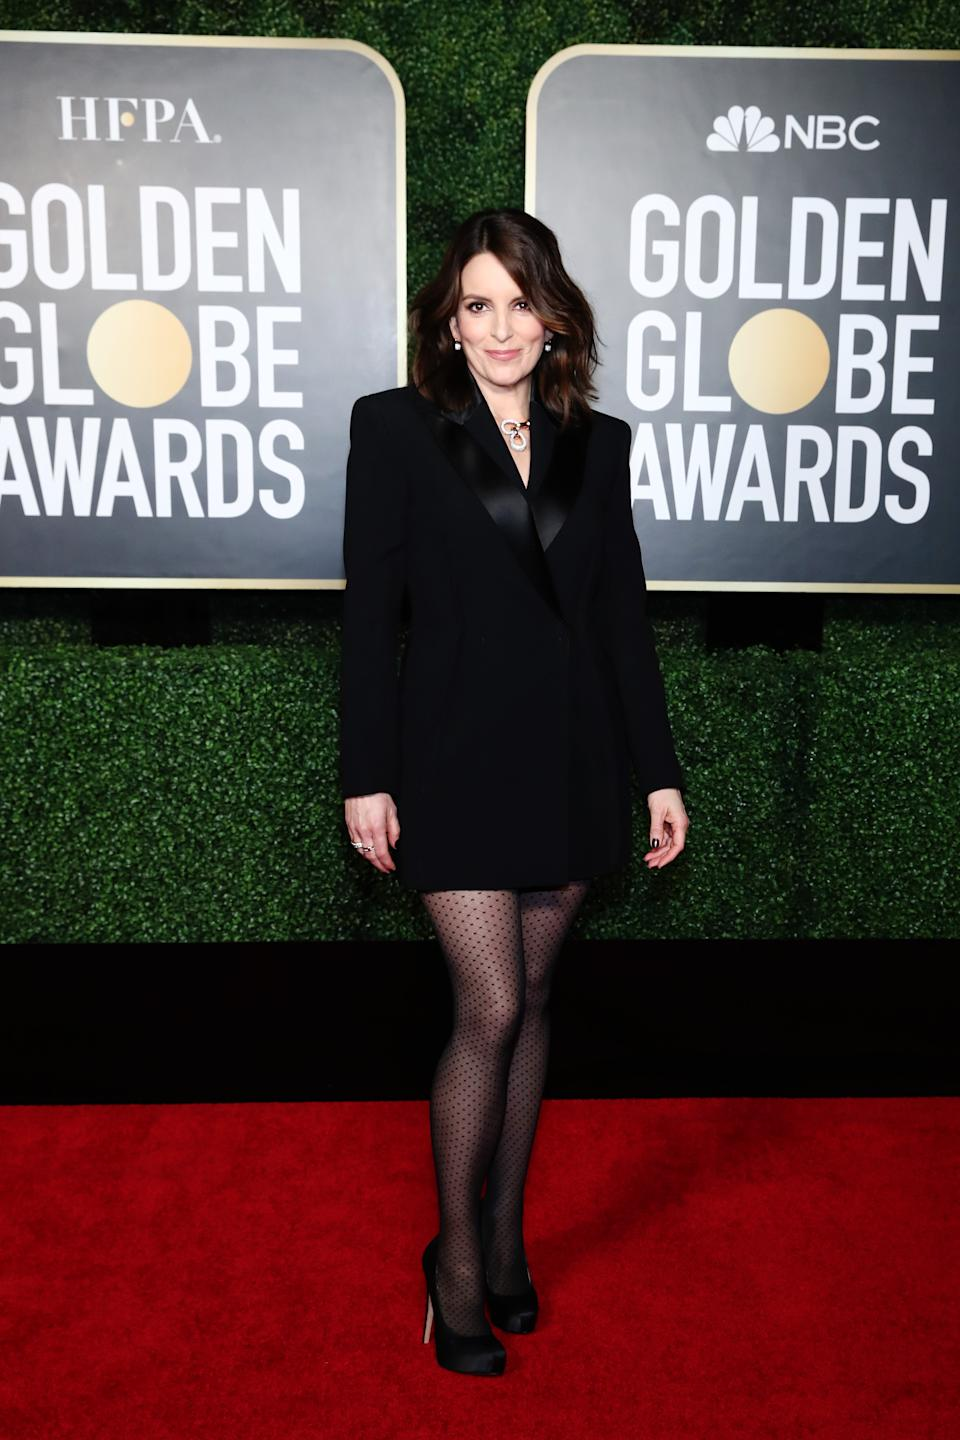 Co-host Tina Fey attends the 78th Annual Golden Globe Awards held at The Rainbow Room and broadcast on February 28, 2021 in New York, New York. -- (Photo by Cindy Ord/NBCUniversal/NBCU Photo Bank via Getty Images)